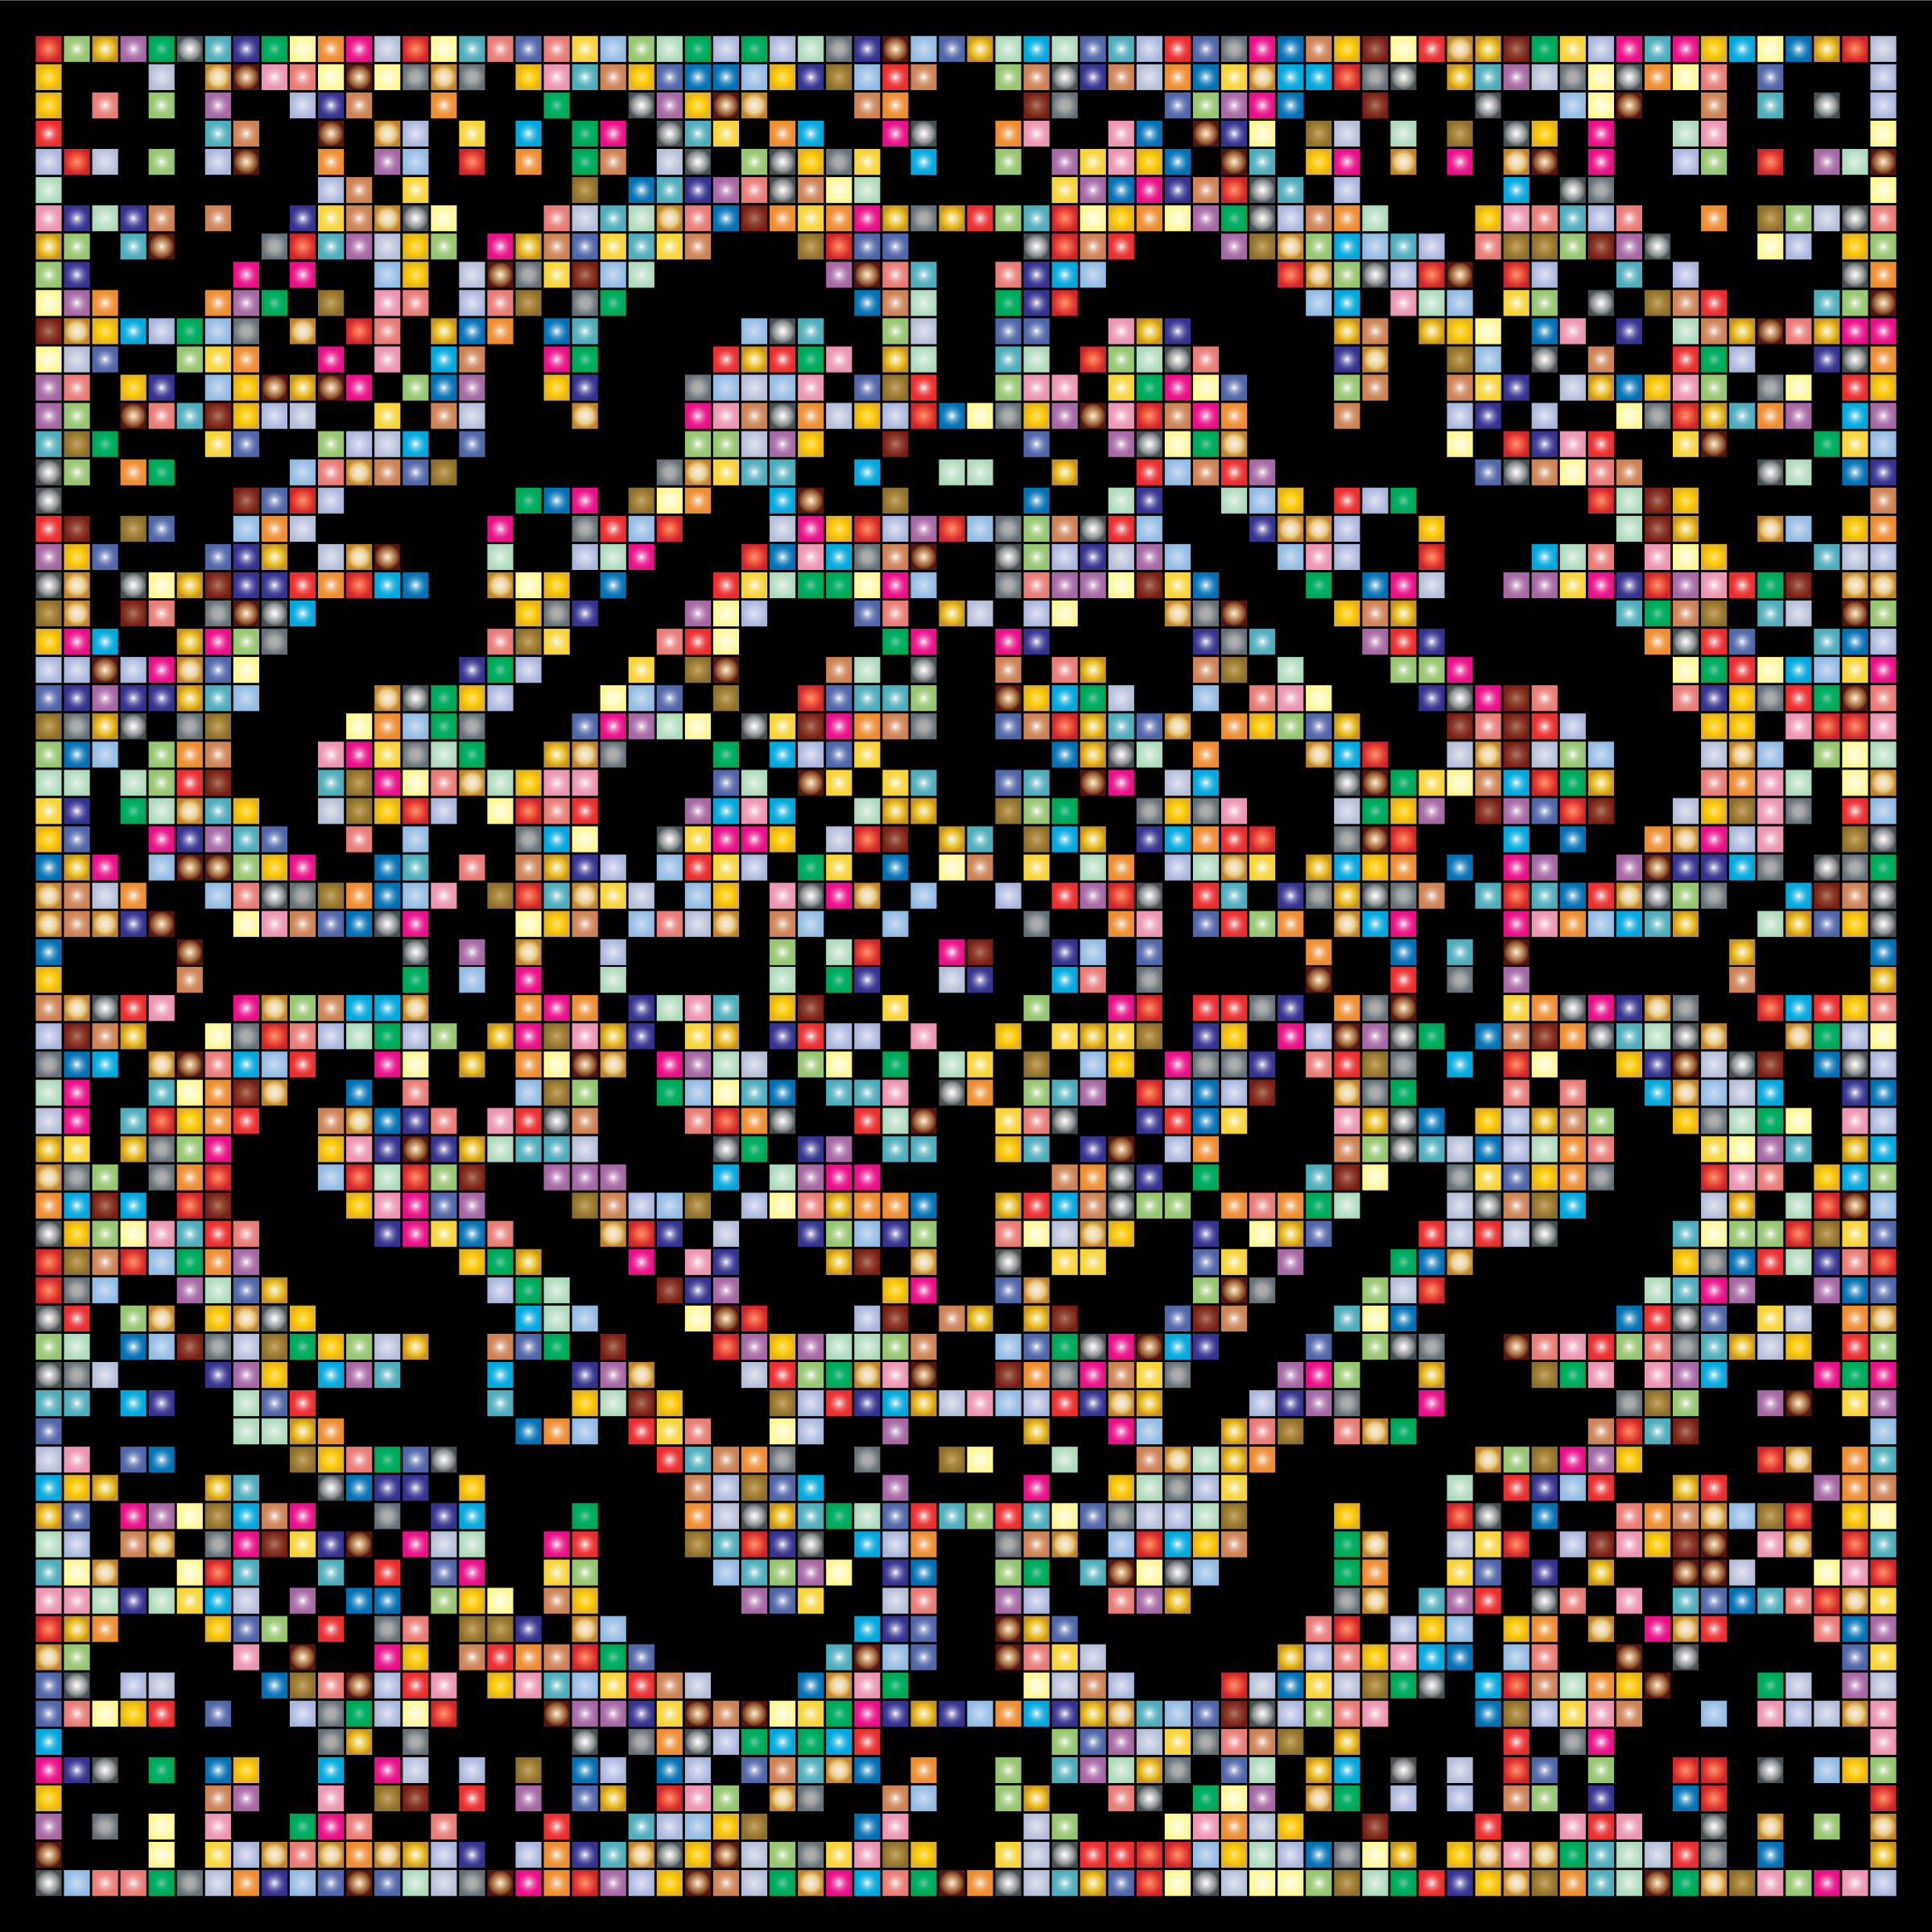 Prismatic Metropolitan Museum Pattern Recreated 3 by GDJ